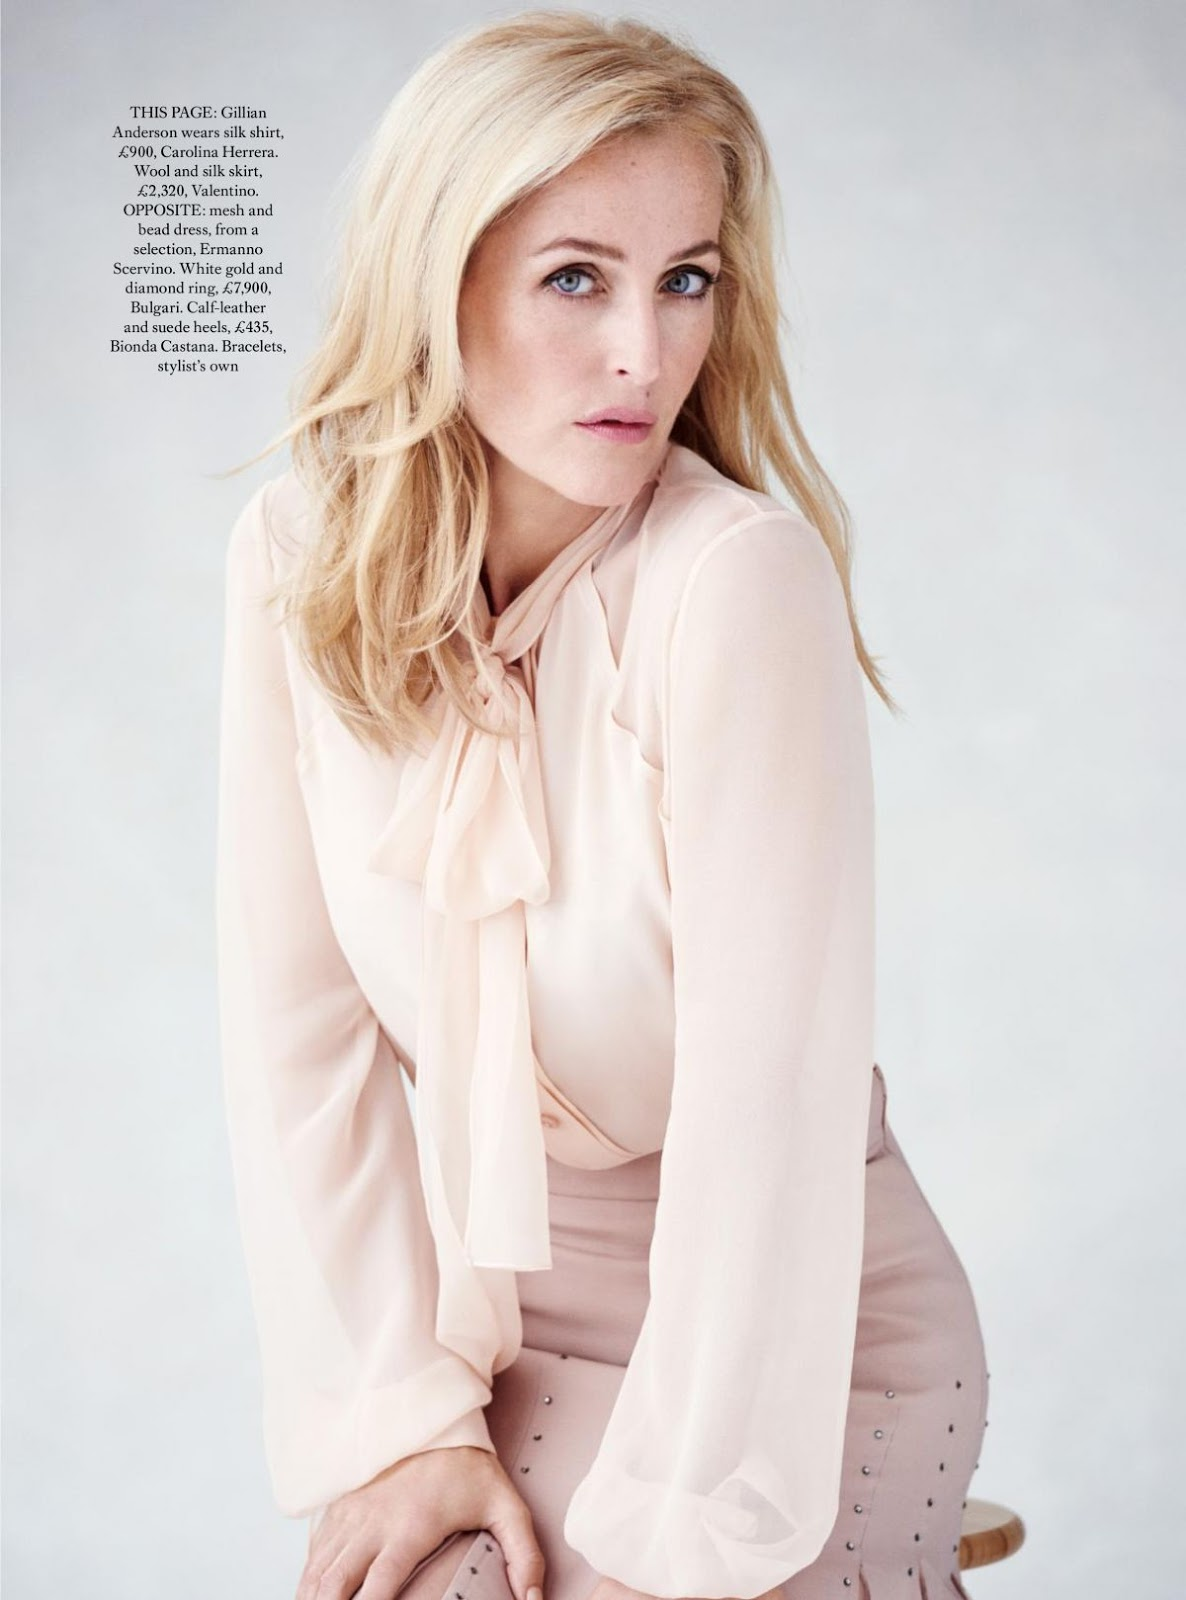 Gillian Anderson HQ Photoshoot for Harper's Bazaar Magazine UK October 2016 Issue